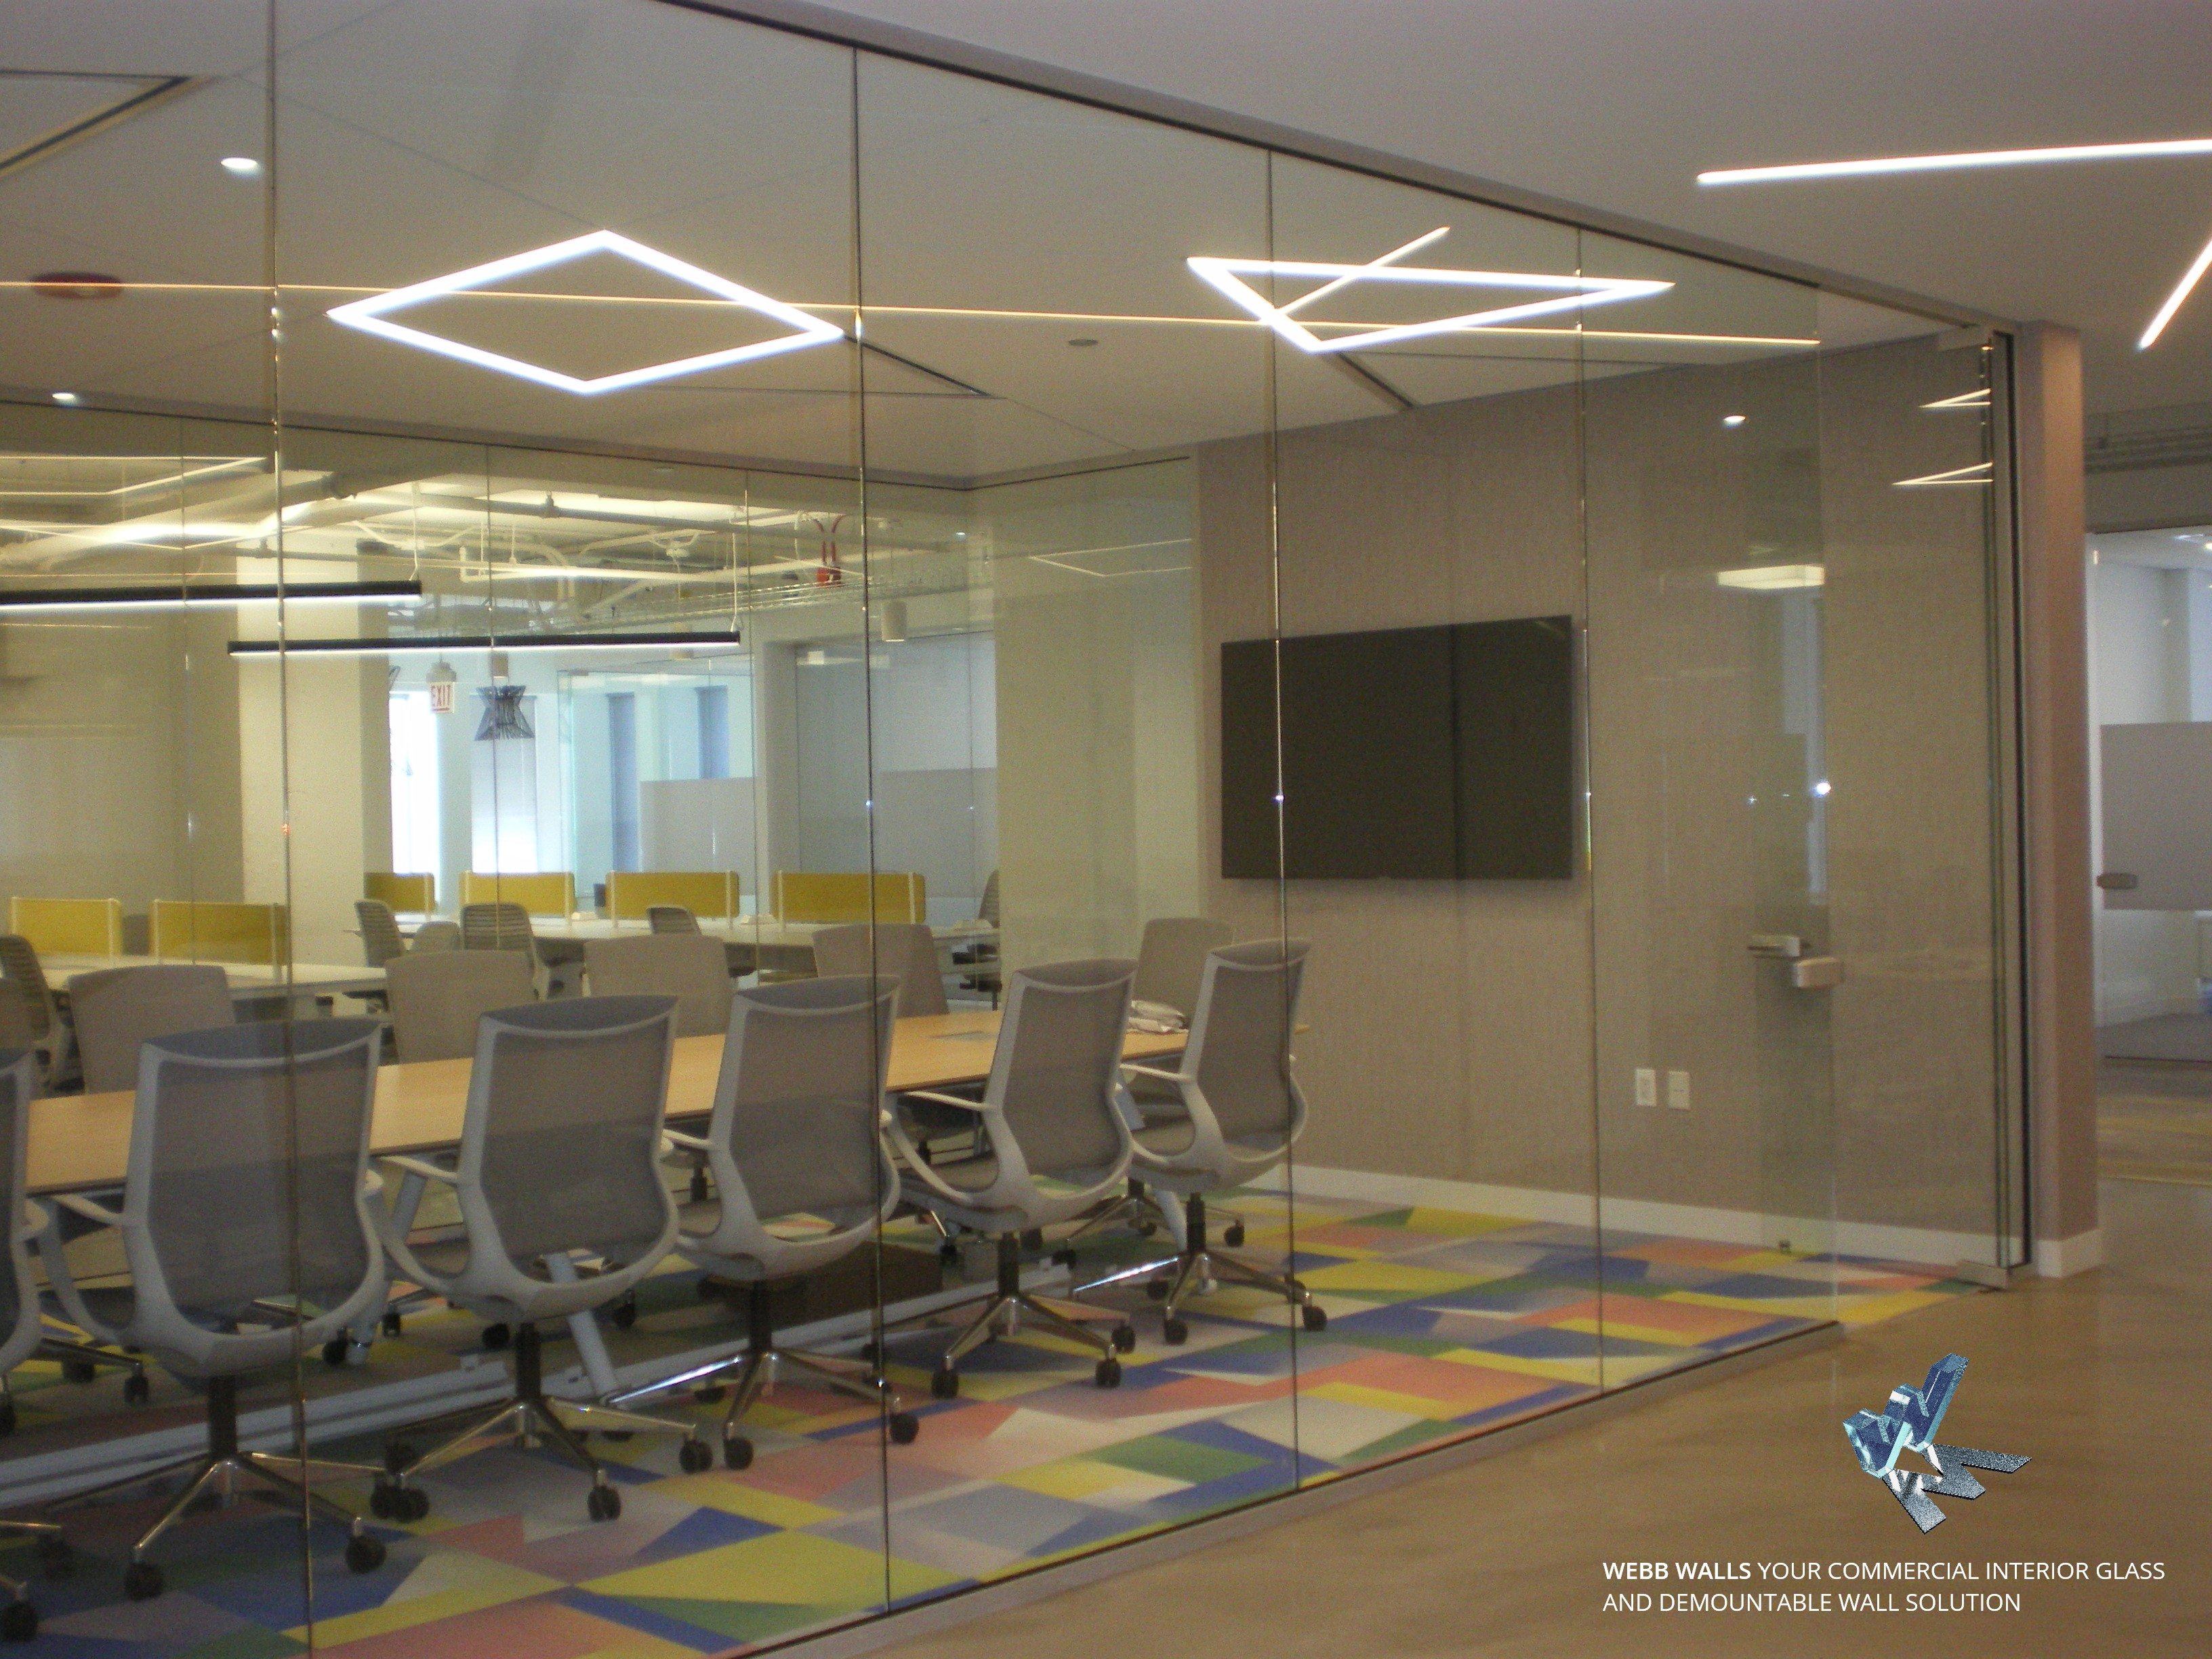 Webb walls your commercial glass and demountable walls solutions. Skyler Glass